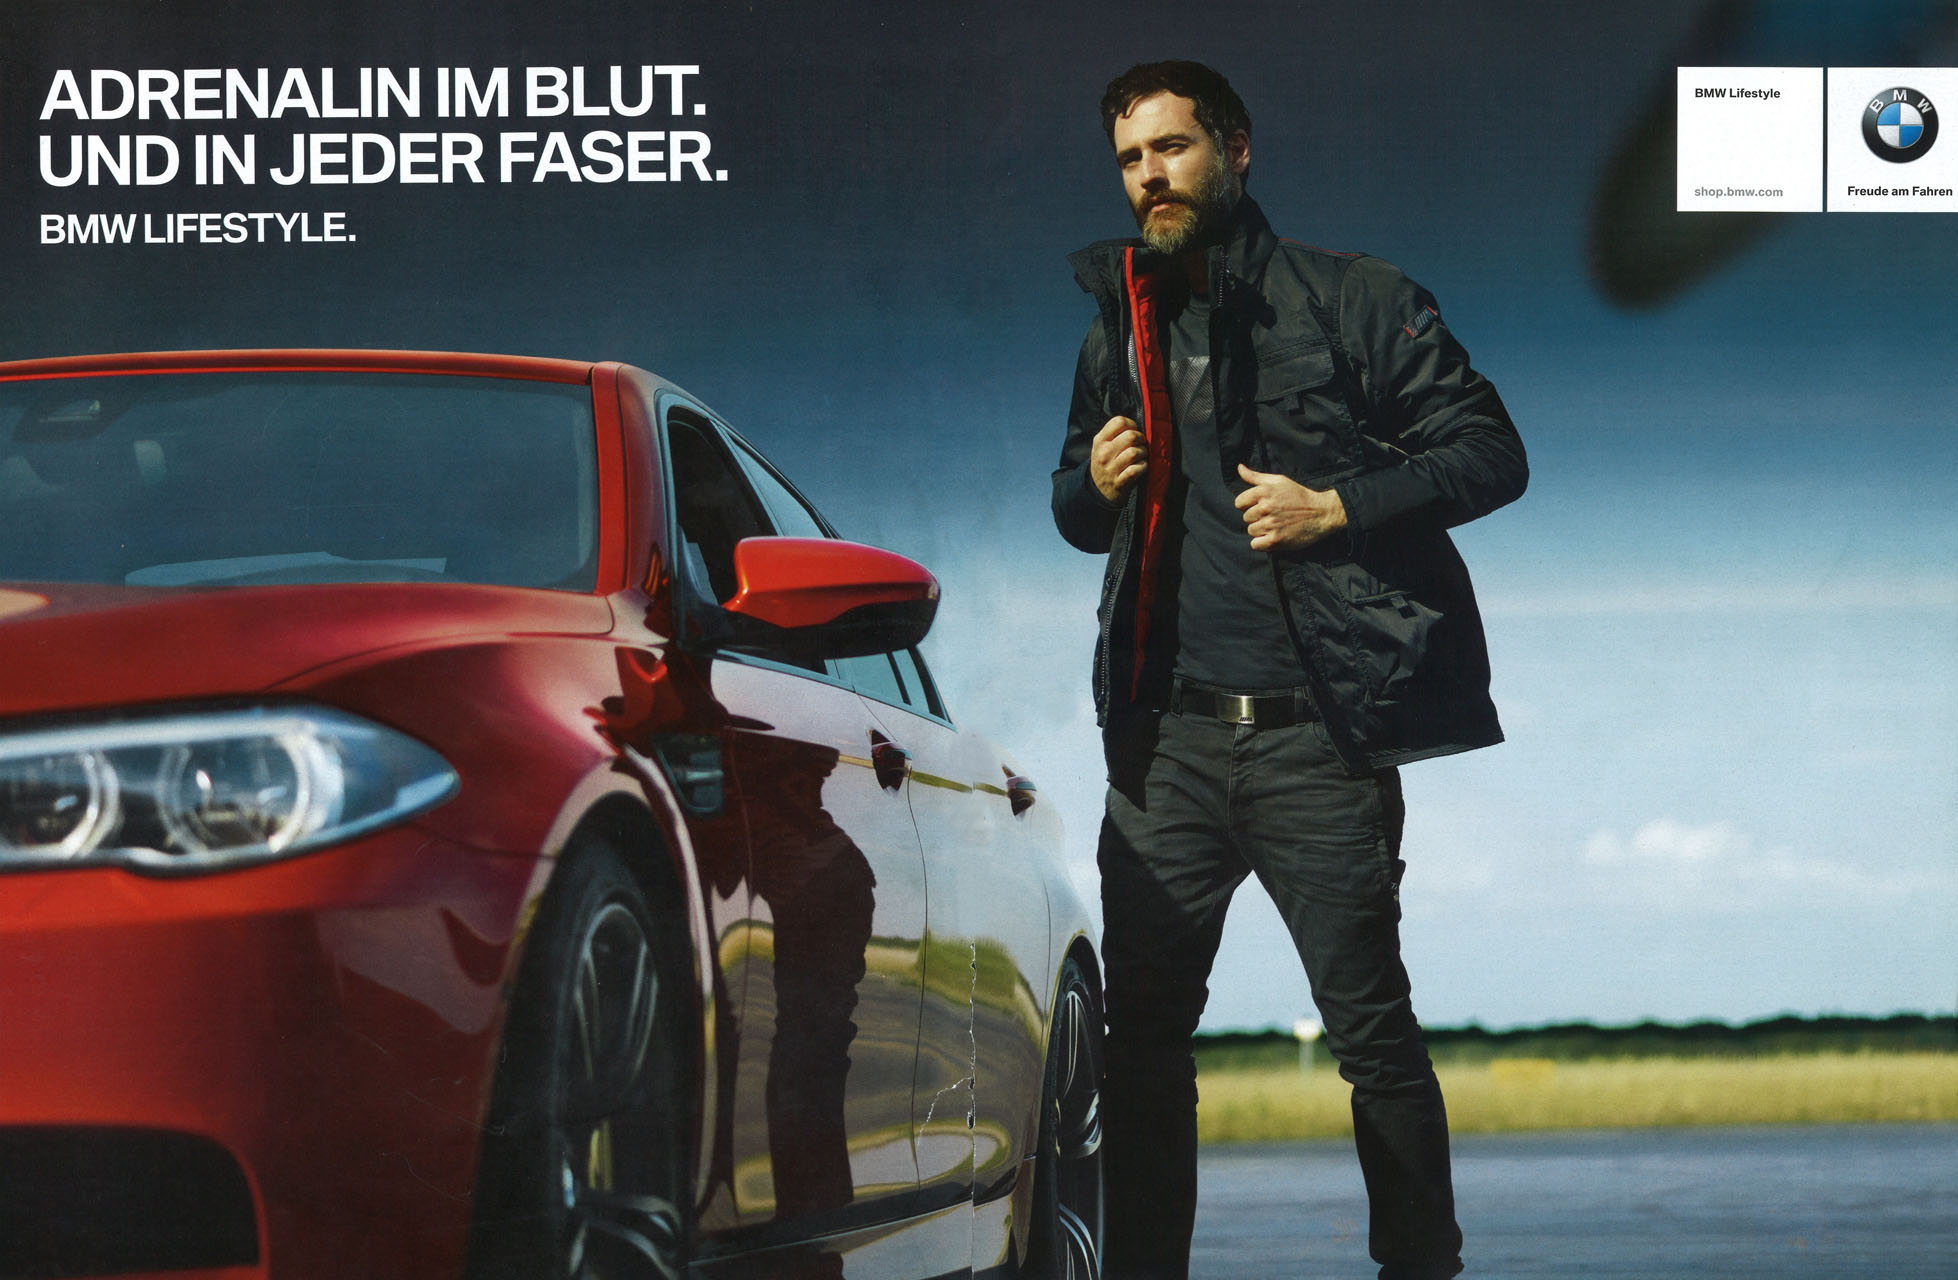 Panagiotis Simopoulos being easyrider for BMW.